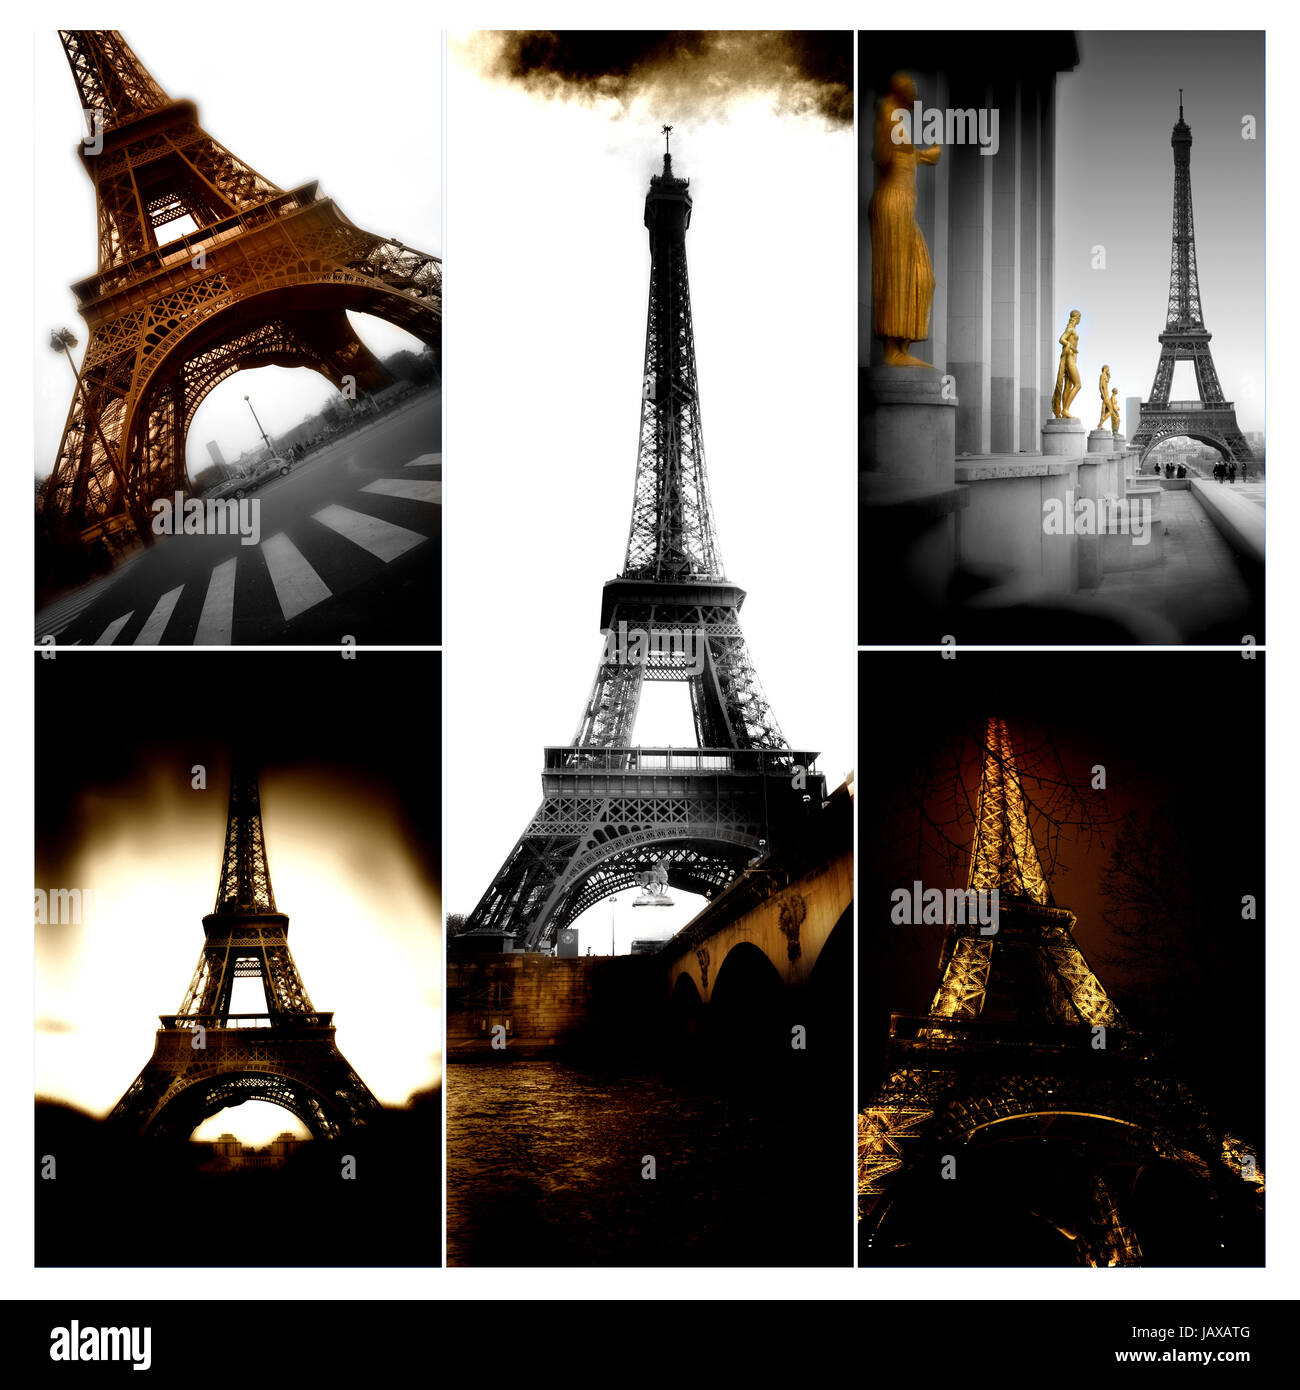 Iron Construction of one of the famoust european and french landmark Eiffel Tower in Paris - Stock Image